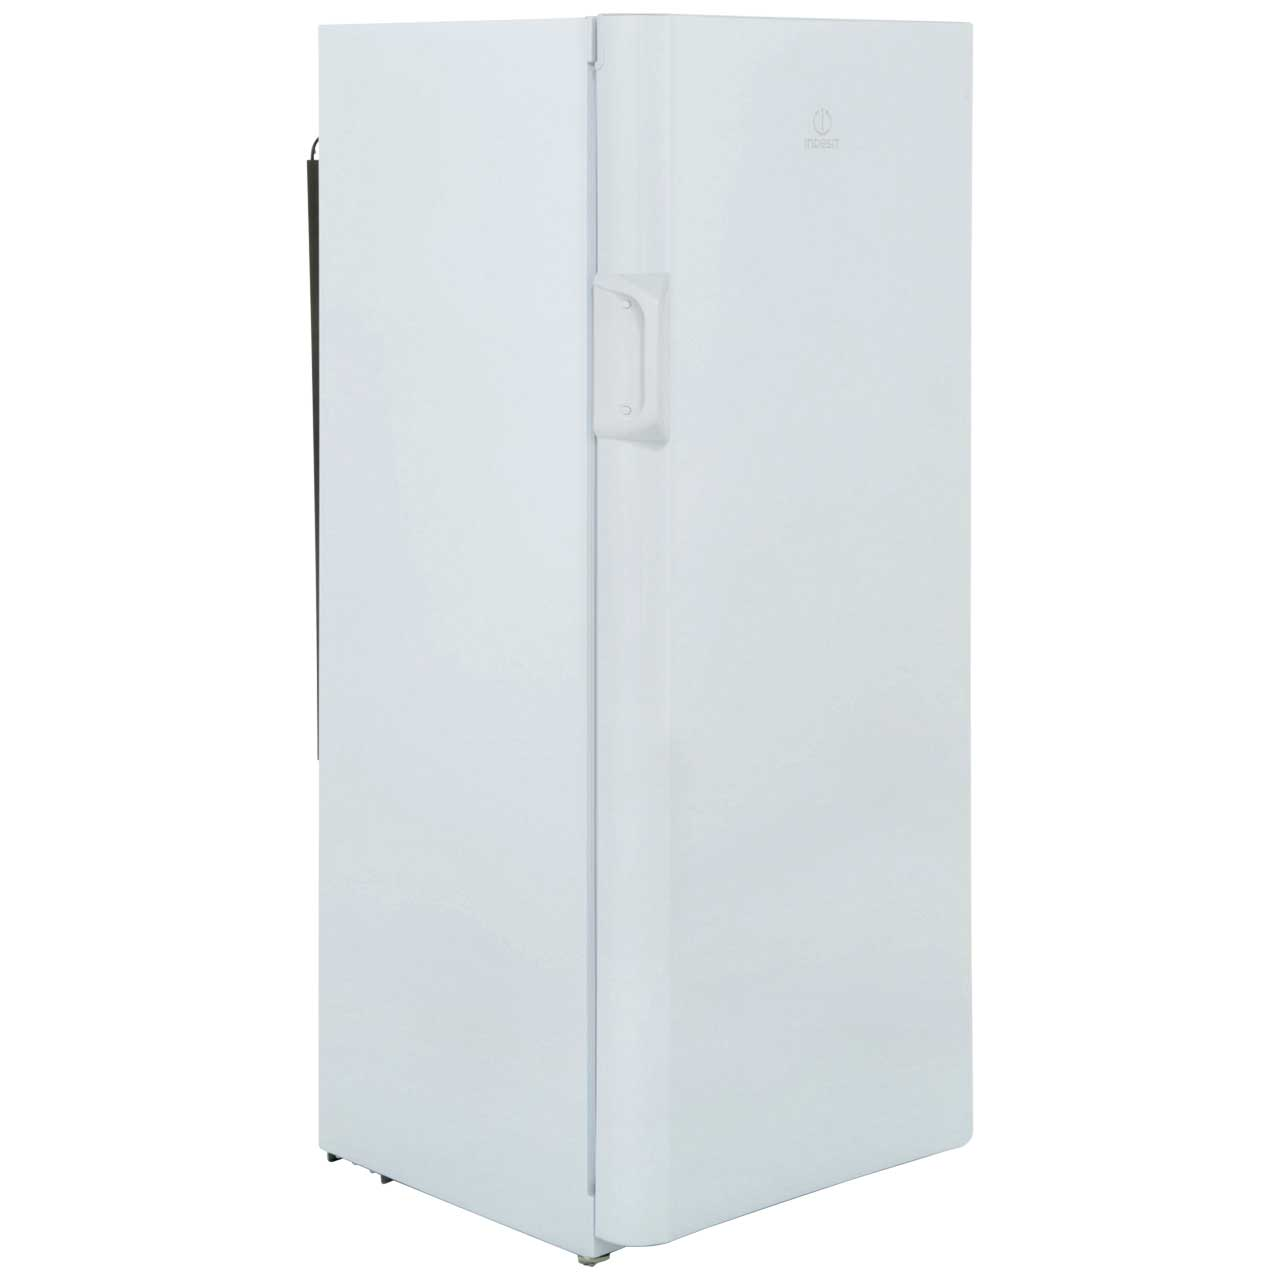 Indesit UIAA10F Upright Freezer - White